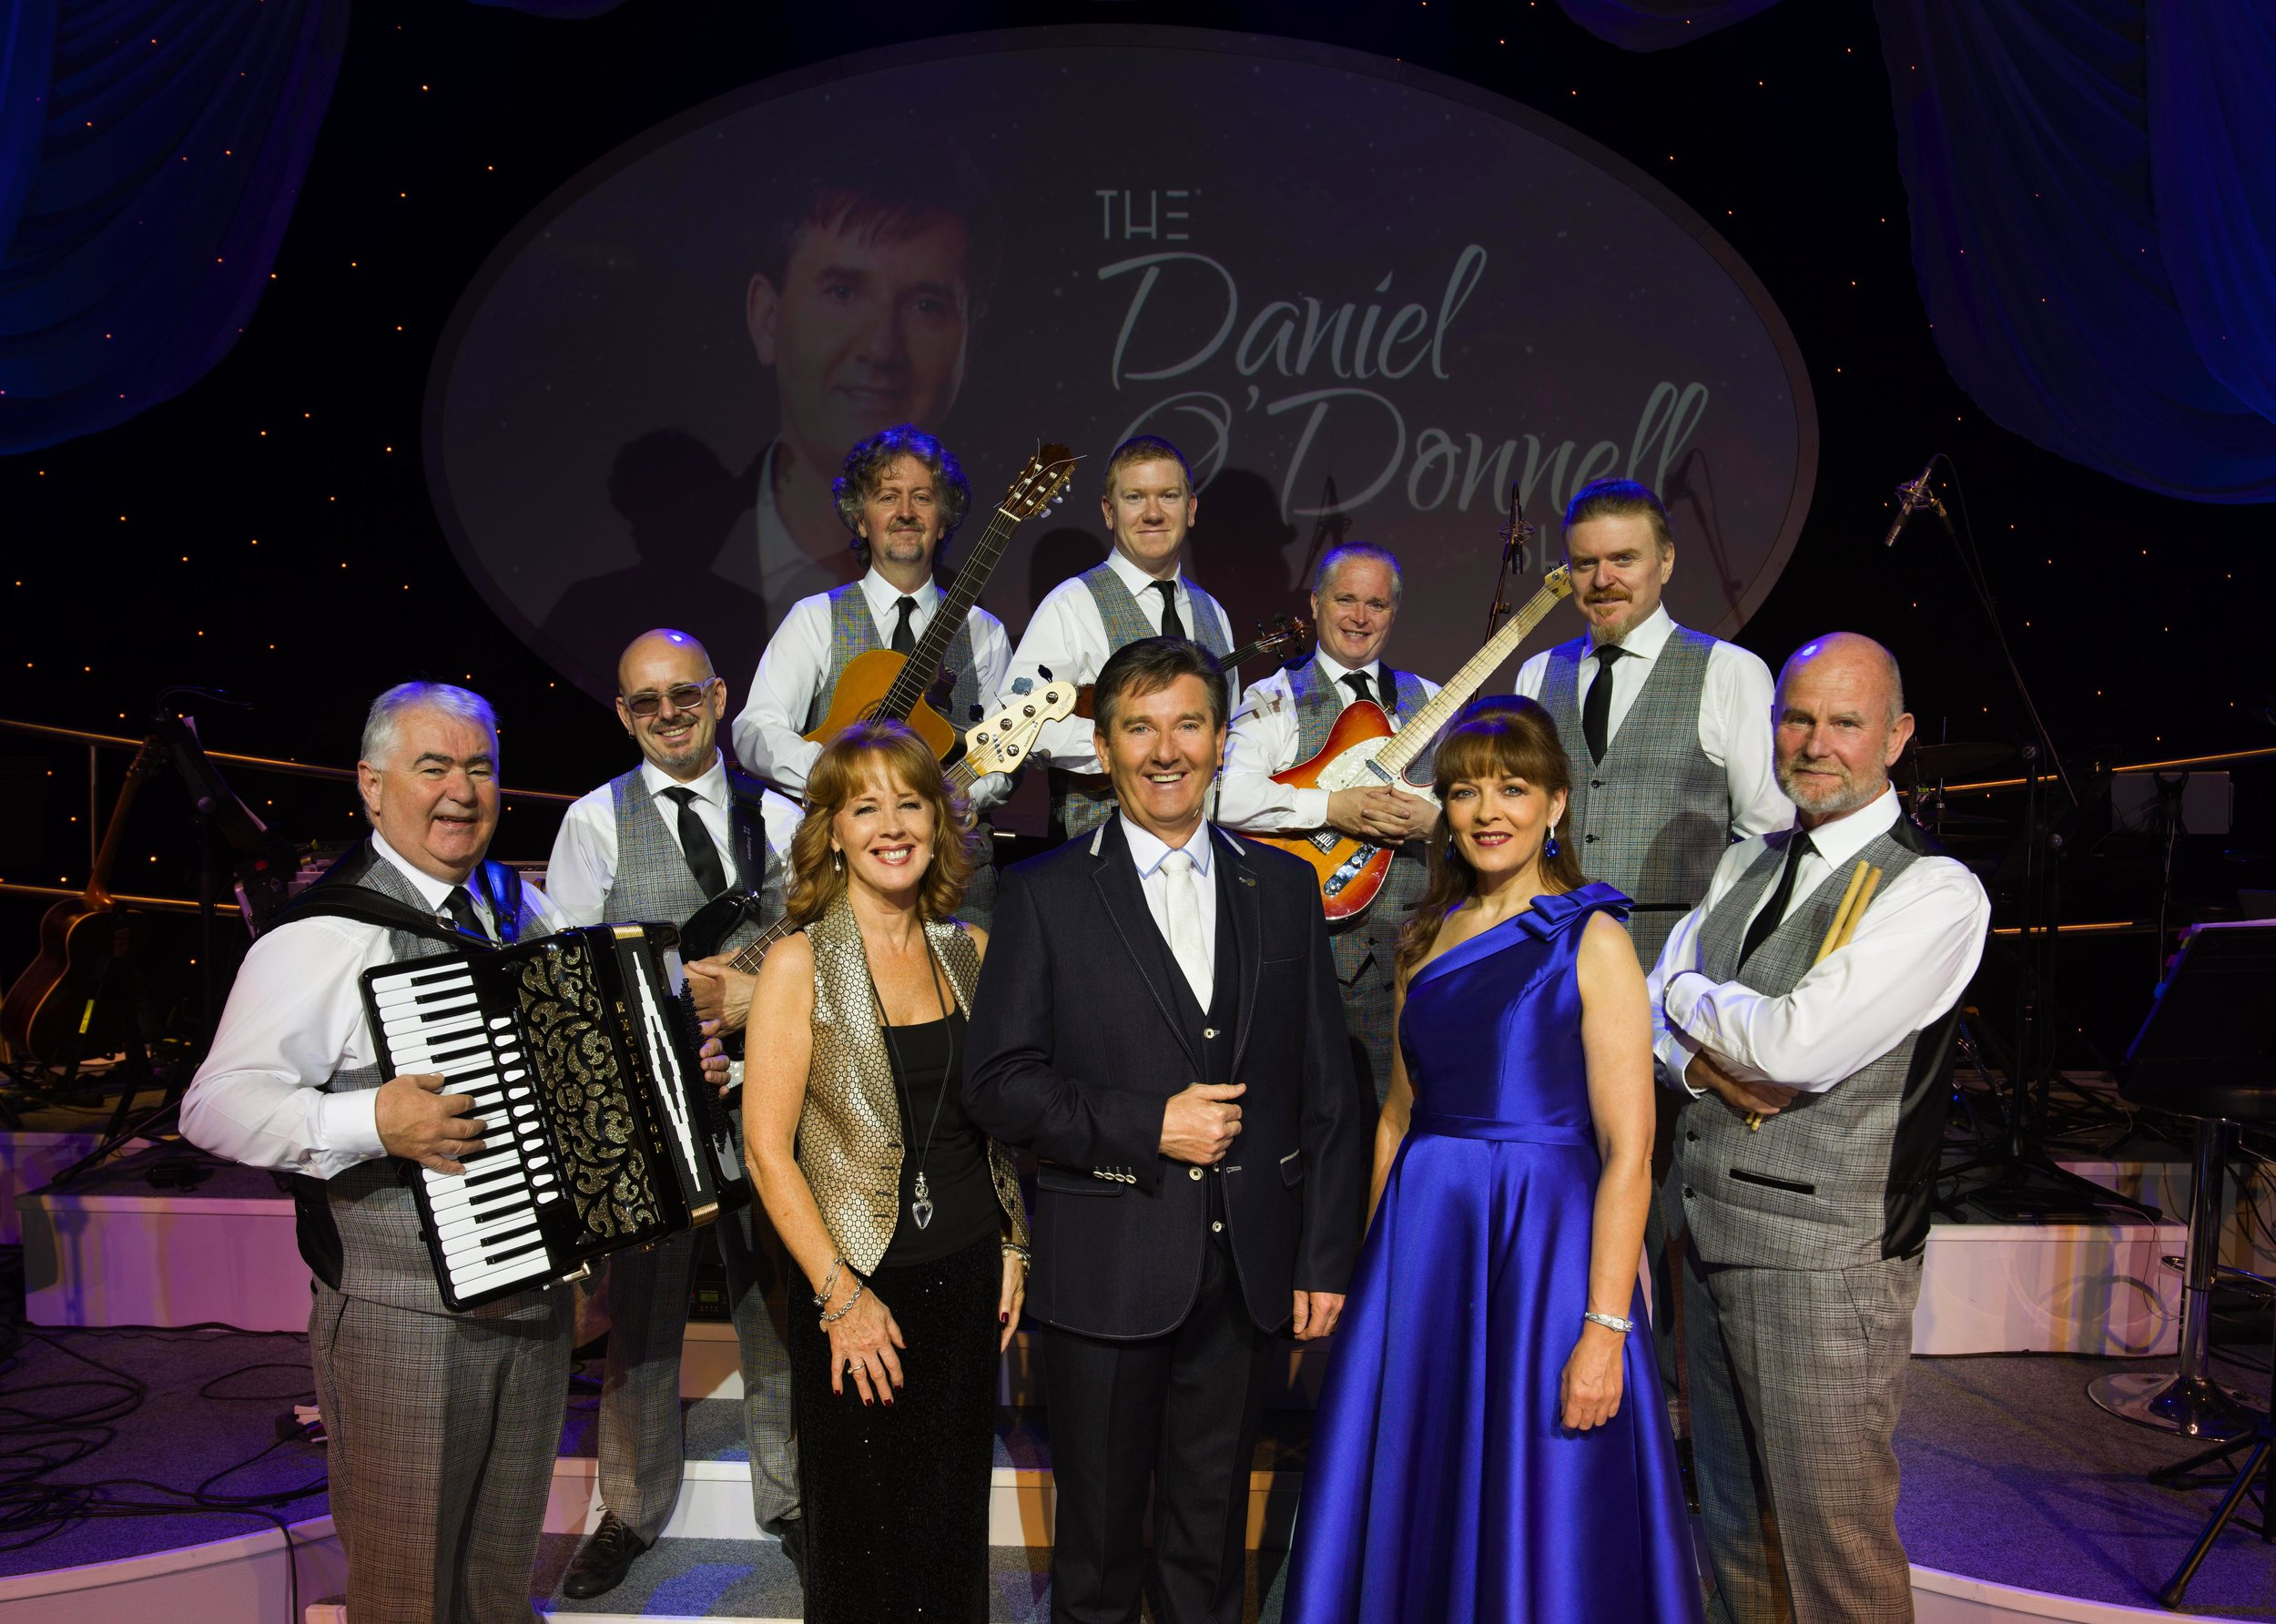 best daniel o'donnell band 2016.jpg